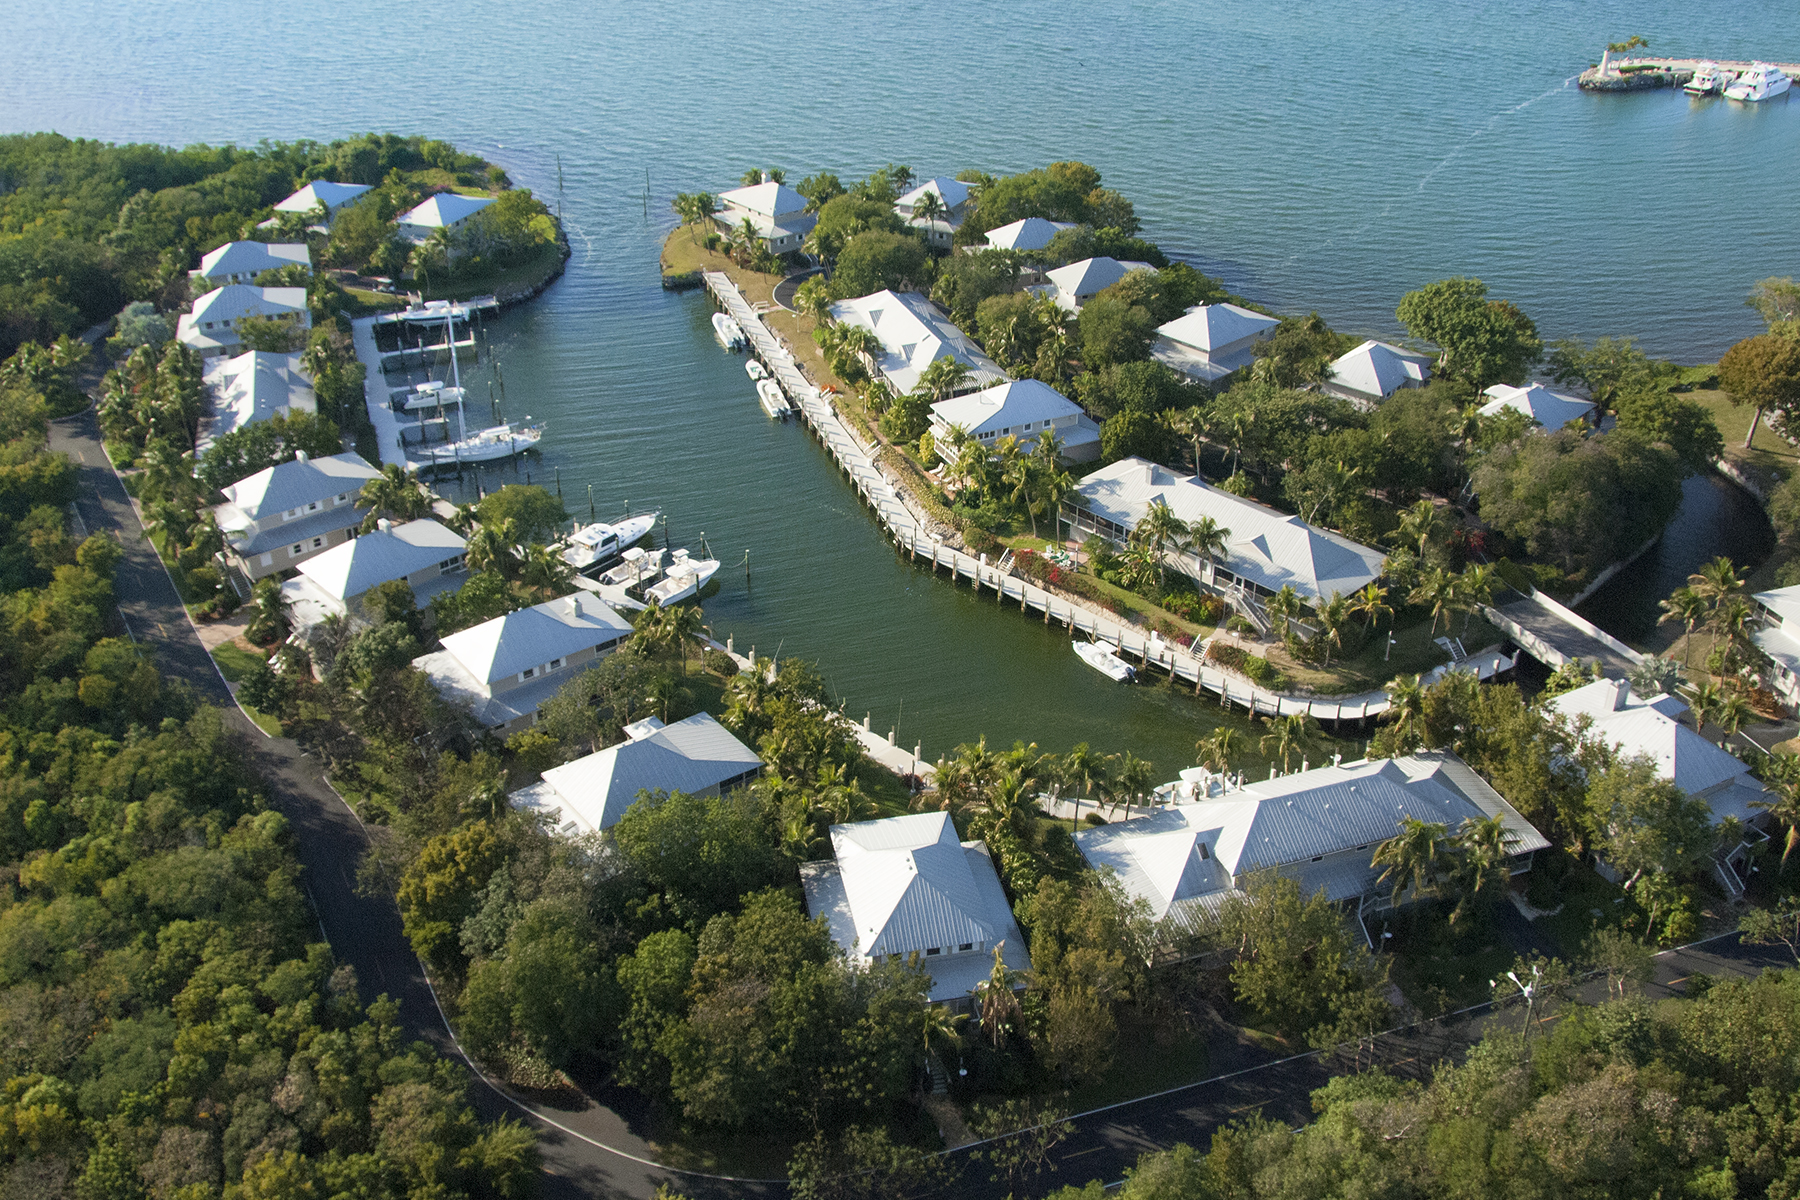 獨棟家庭住宅 為 出售 在 Waterfront Cottage - Key Largo Anglers Club 13 South Marina Drive Key Largo, 佛羅里達州 33037 美國